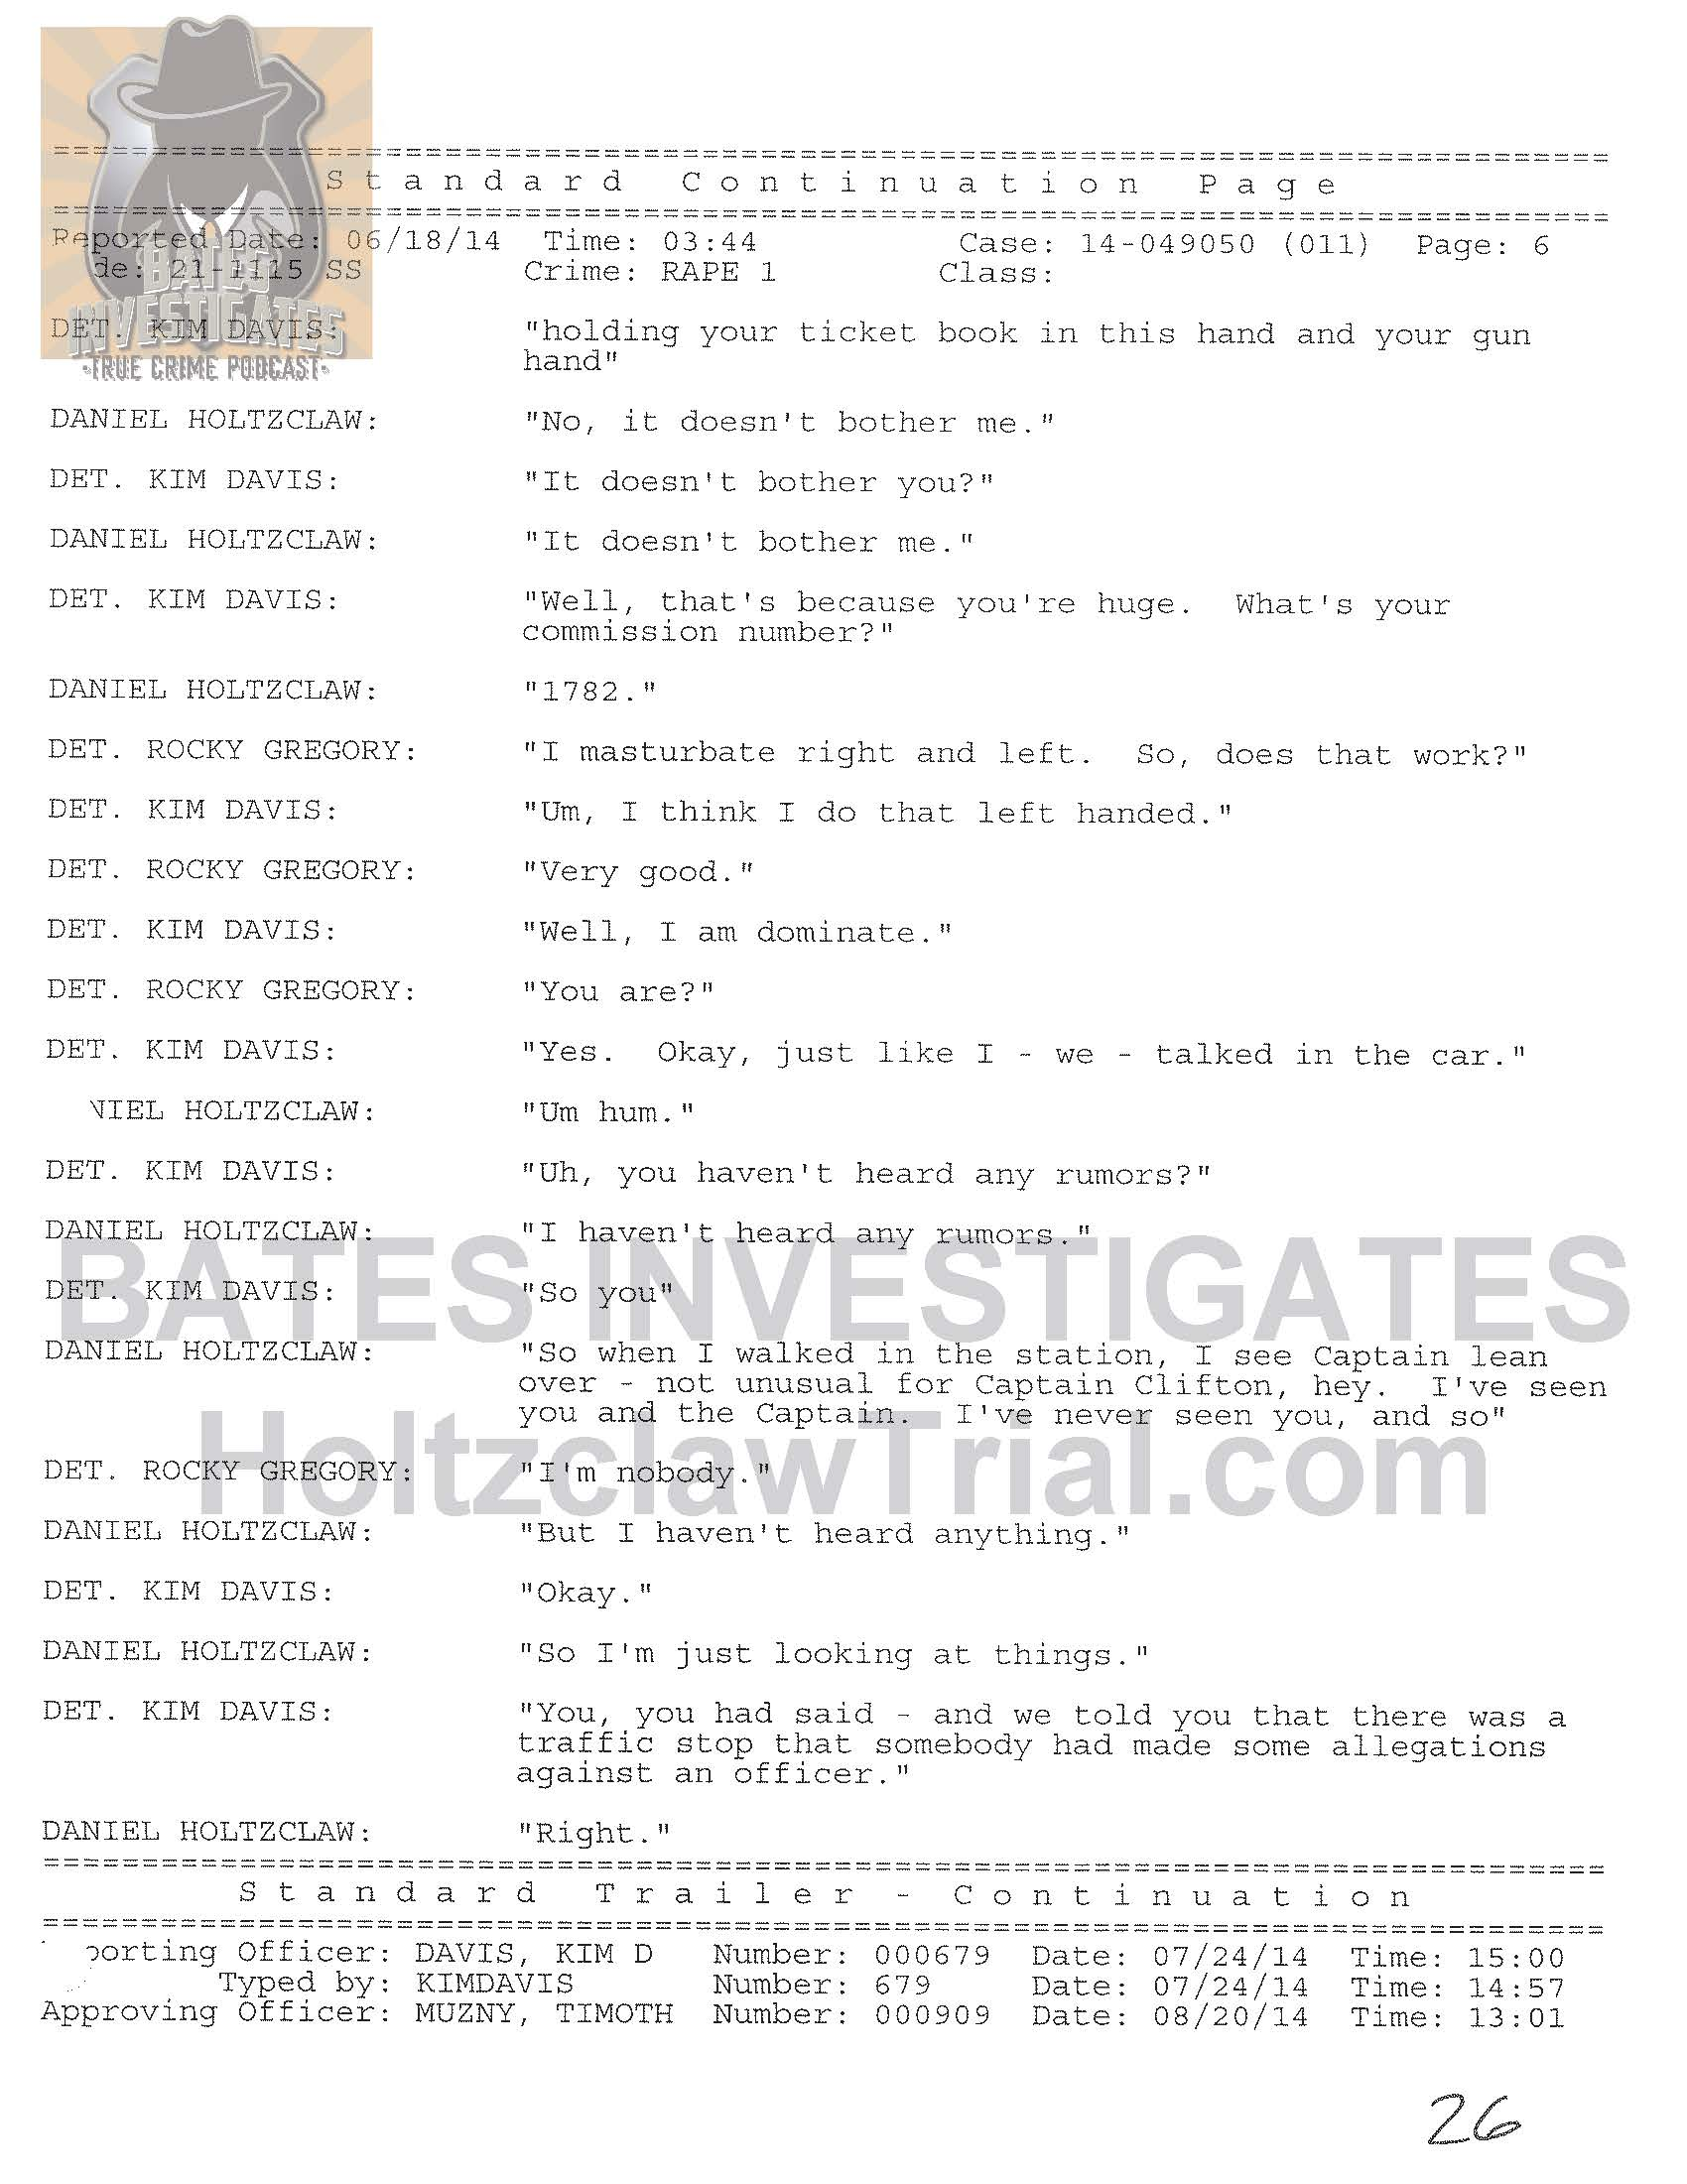 Holtzclaw Interrogation Transcript - Ep02 Redacted_Page_06.jpg